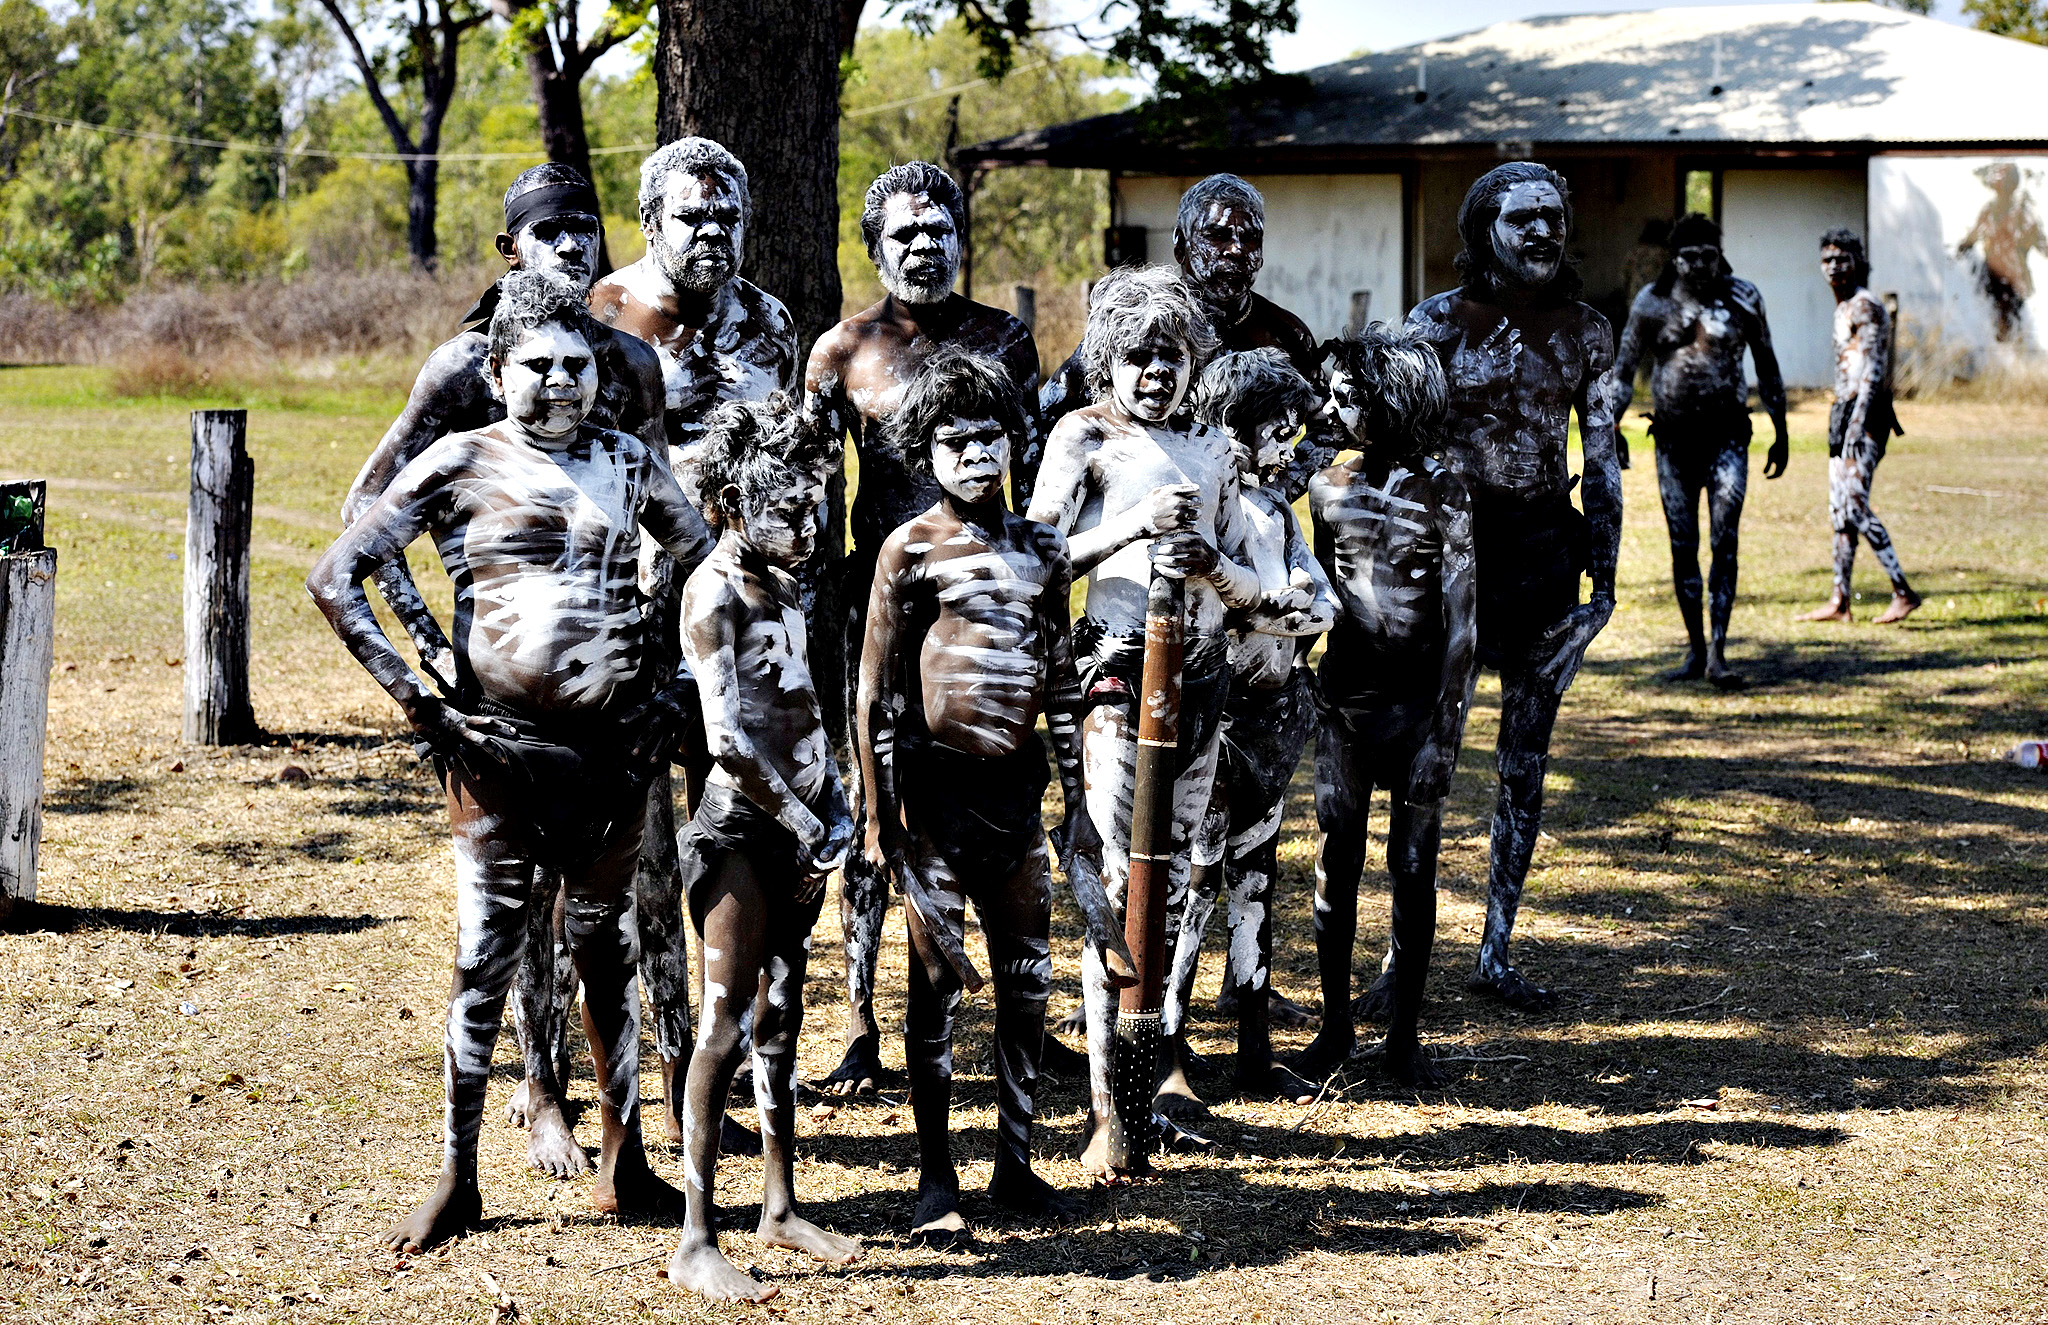 Traditional dancers wait to perform before the swearing-in of members of the new West Daly Regional council in the aboriginal community of Peppimenarti, about 320km south-west of Darwin, Australia, 04 July 2014. The Northern Territory (NT) government is dismantling the Supershire network set up by the previous Labor government in favour of 63 local council to better represent local communities.